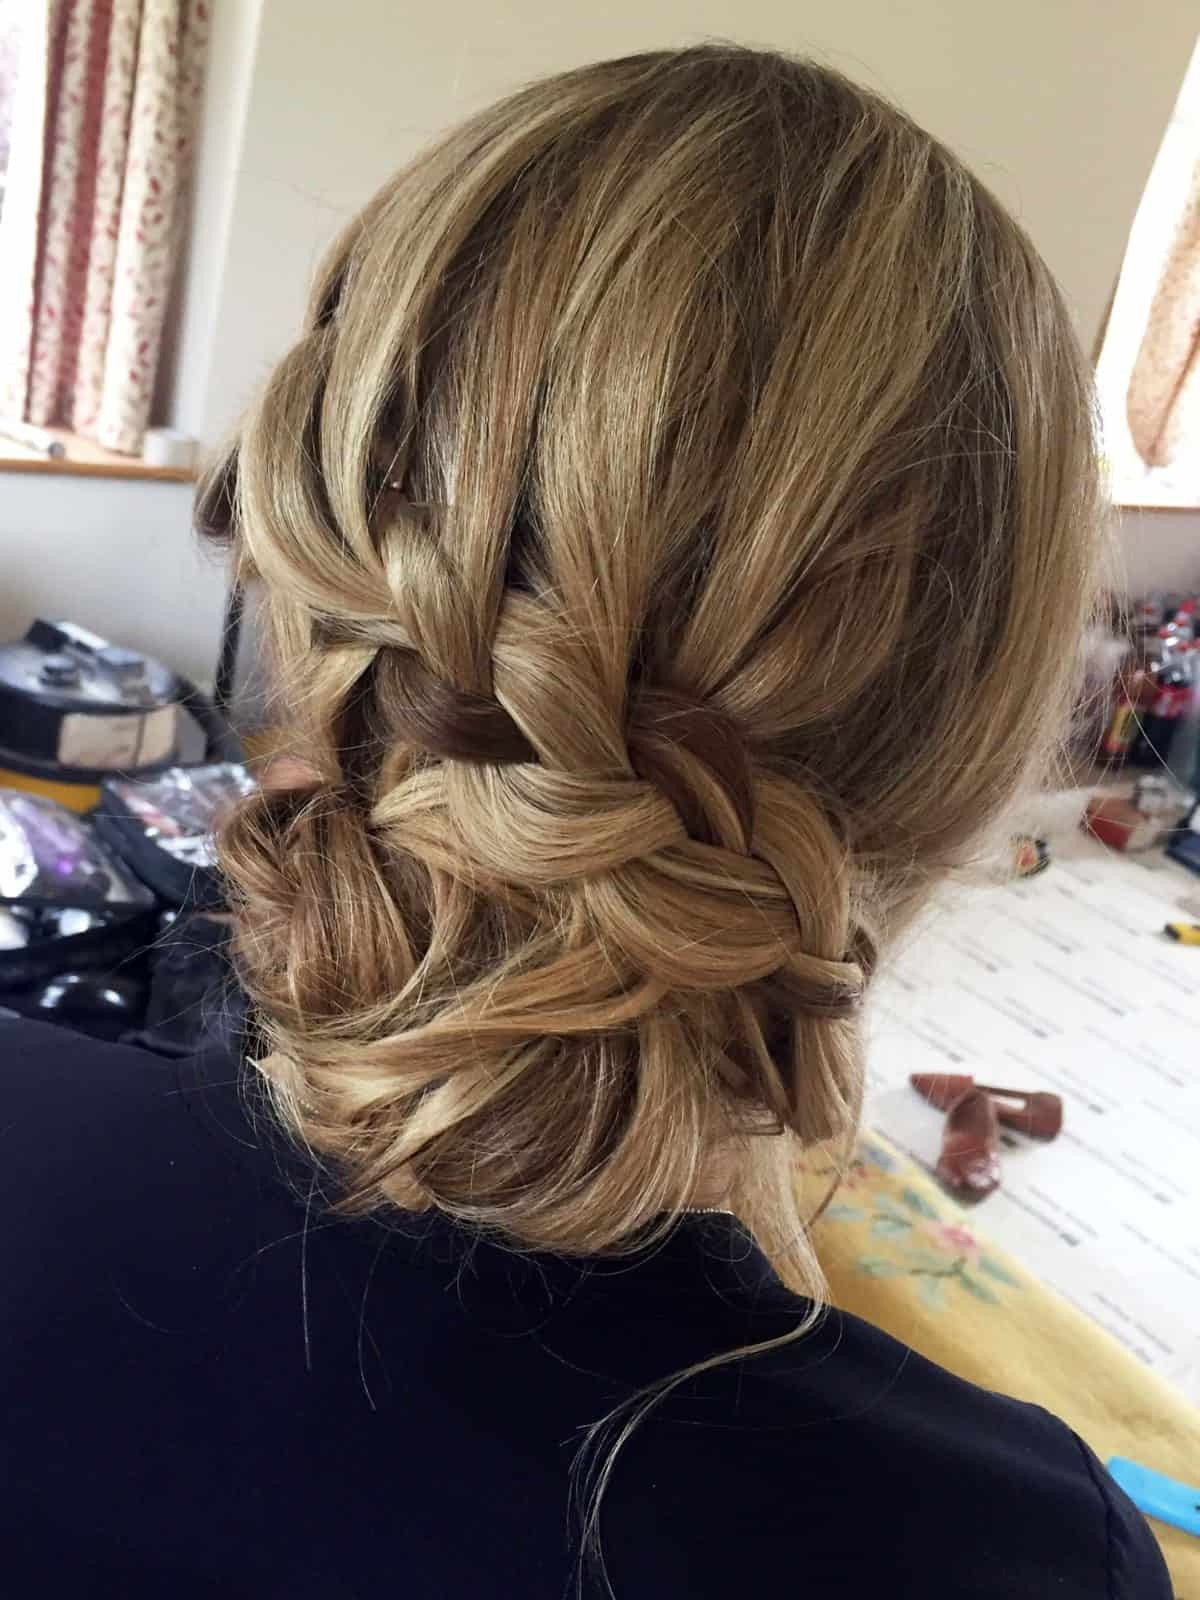 braided boho updo by bridal hairstylist Becky